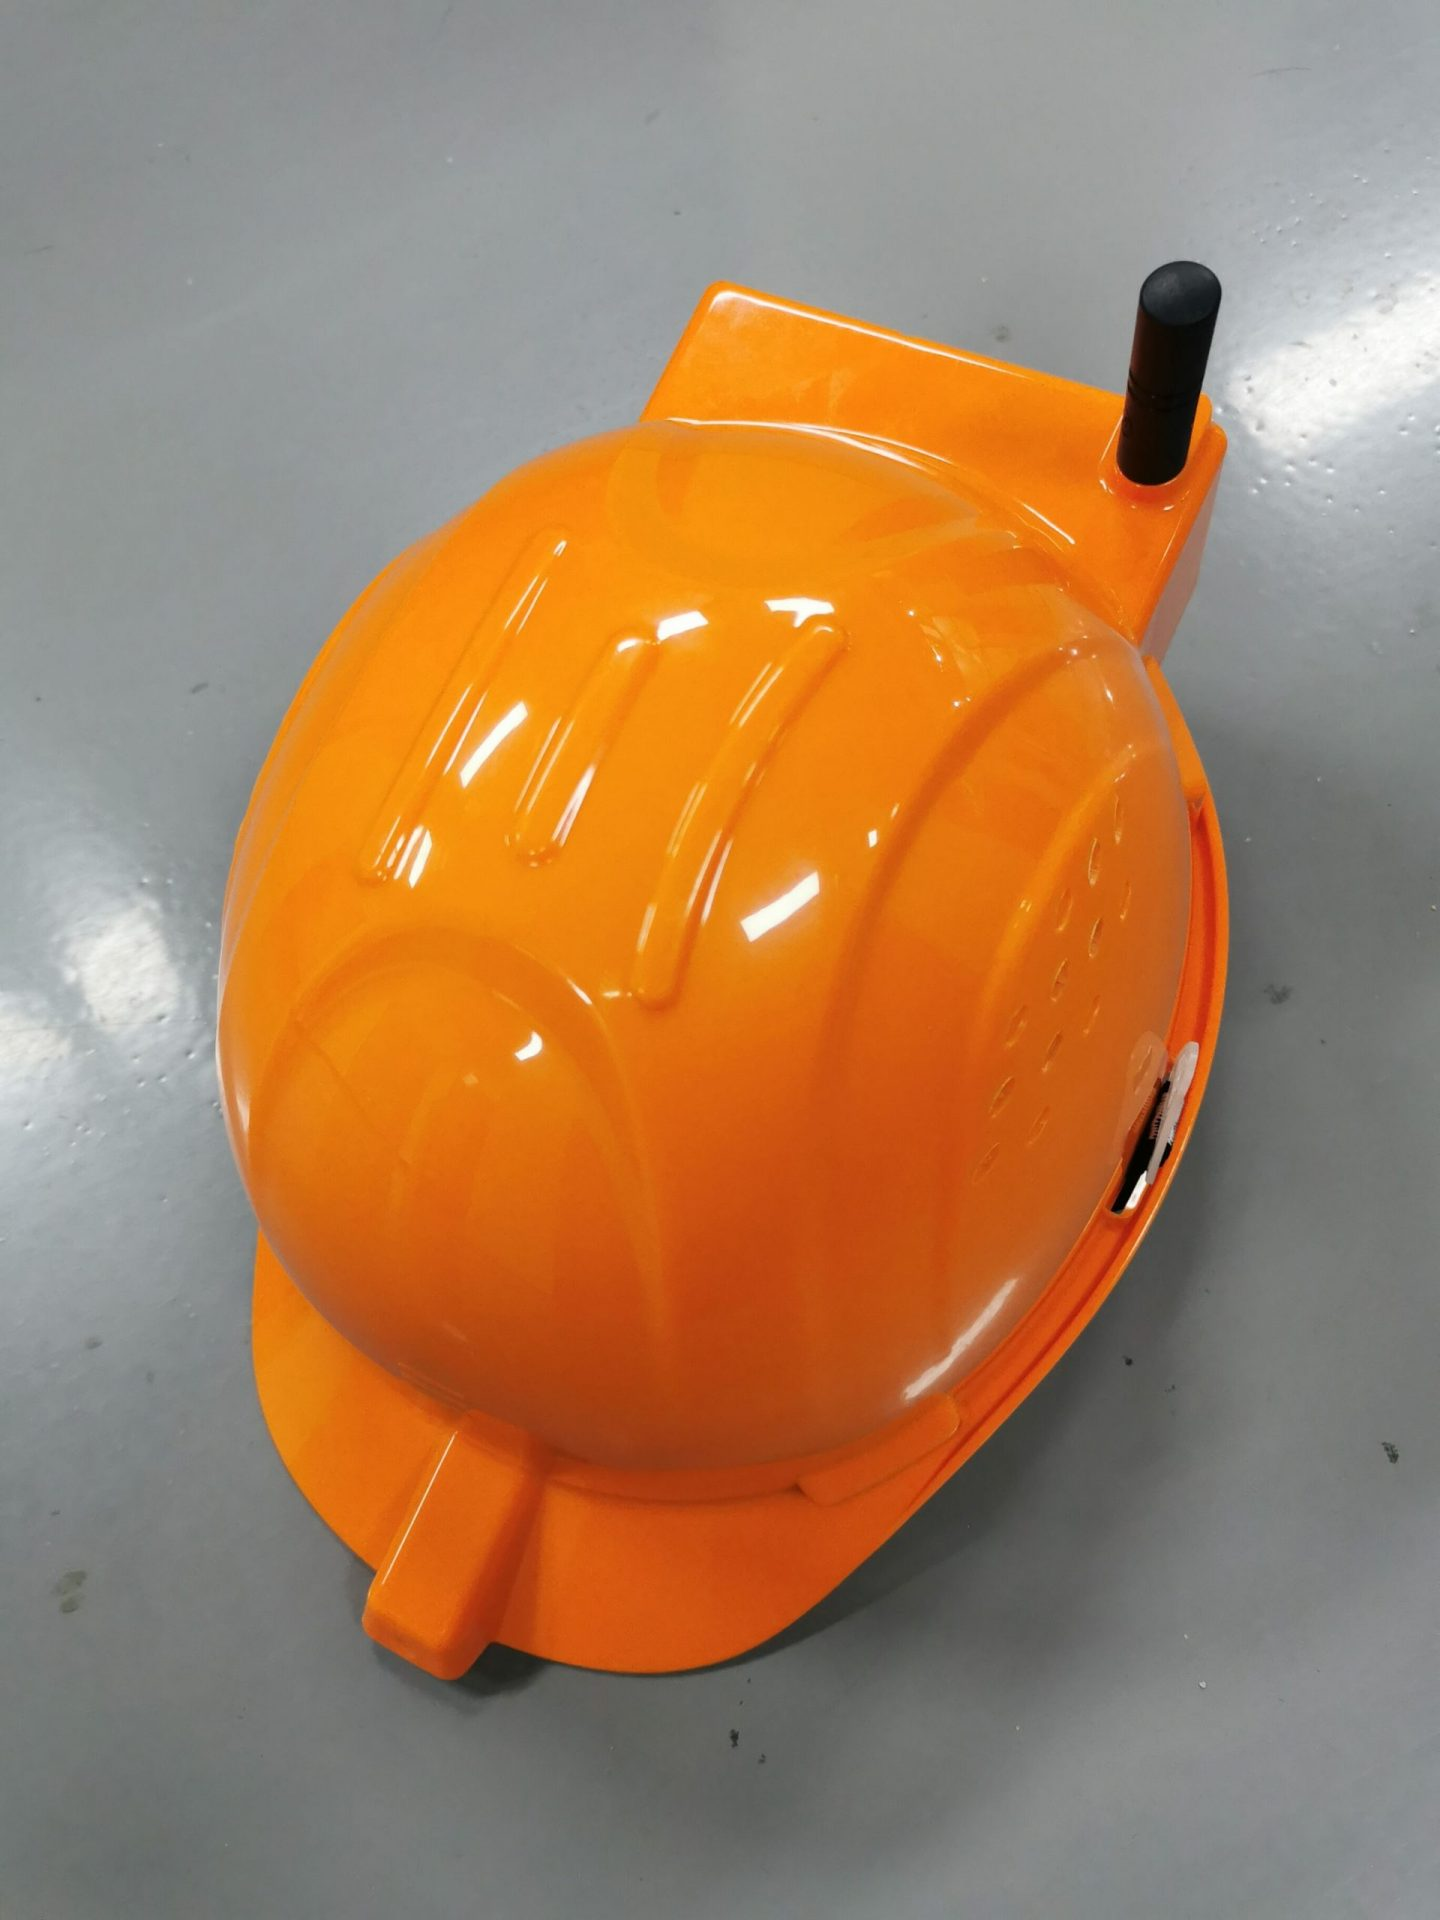 Retevis RA16 for construction sites, surveys, repairings, etc.